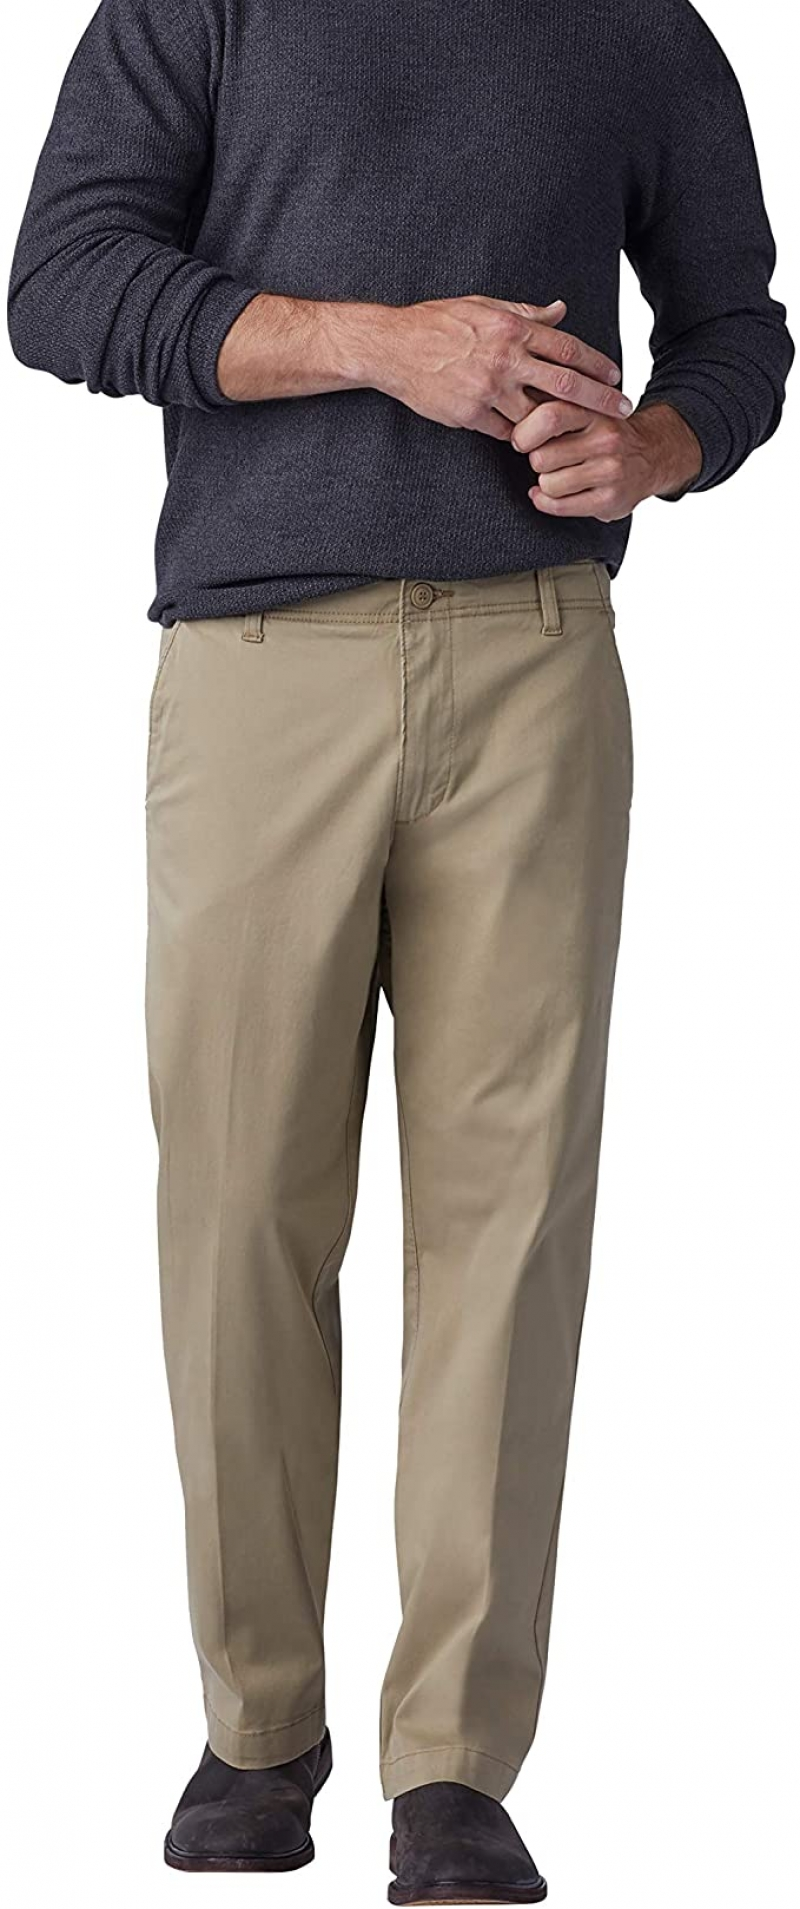 ihocon: Lee Men's Performance Series Extreme Comfort Straight Fit Pant 男士長褲